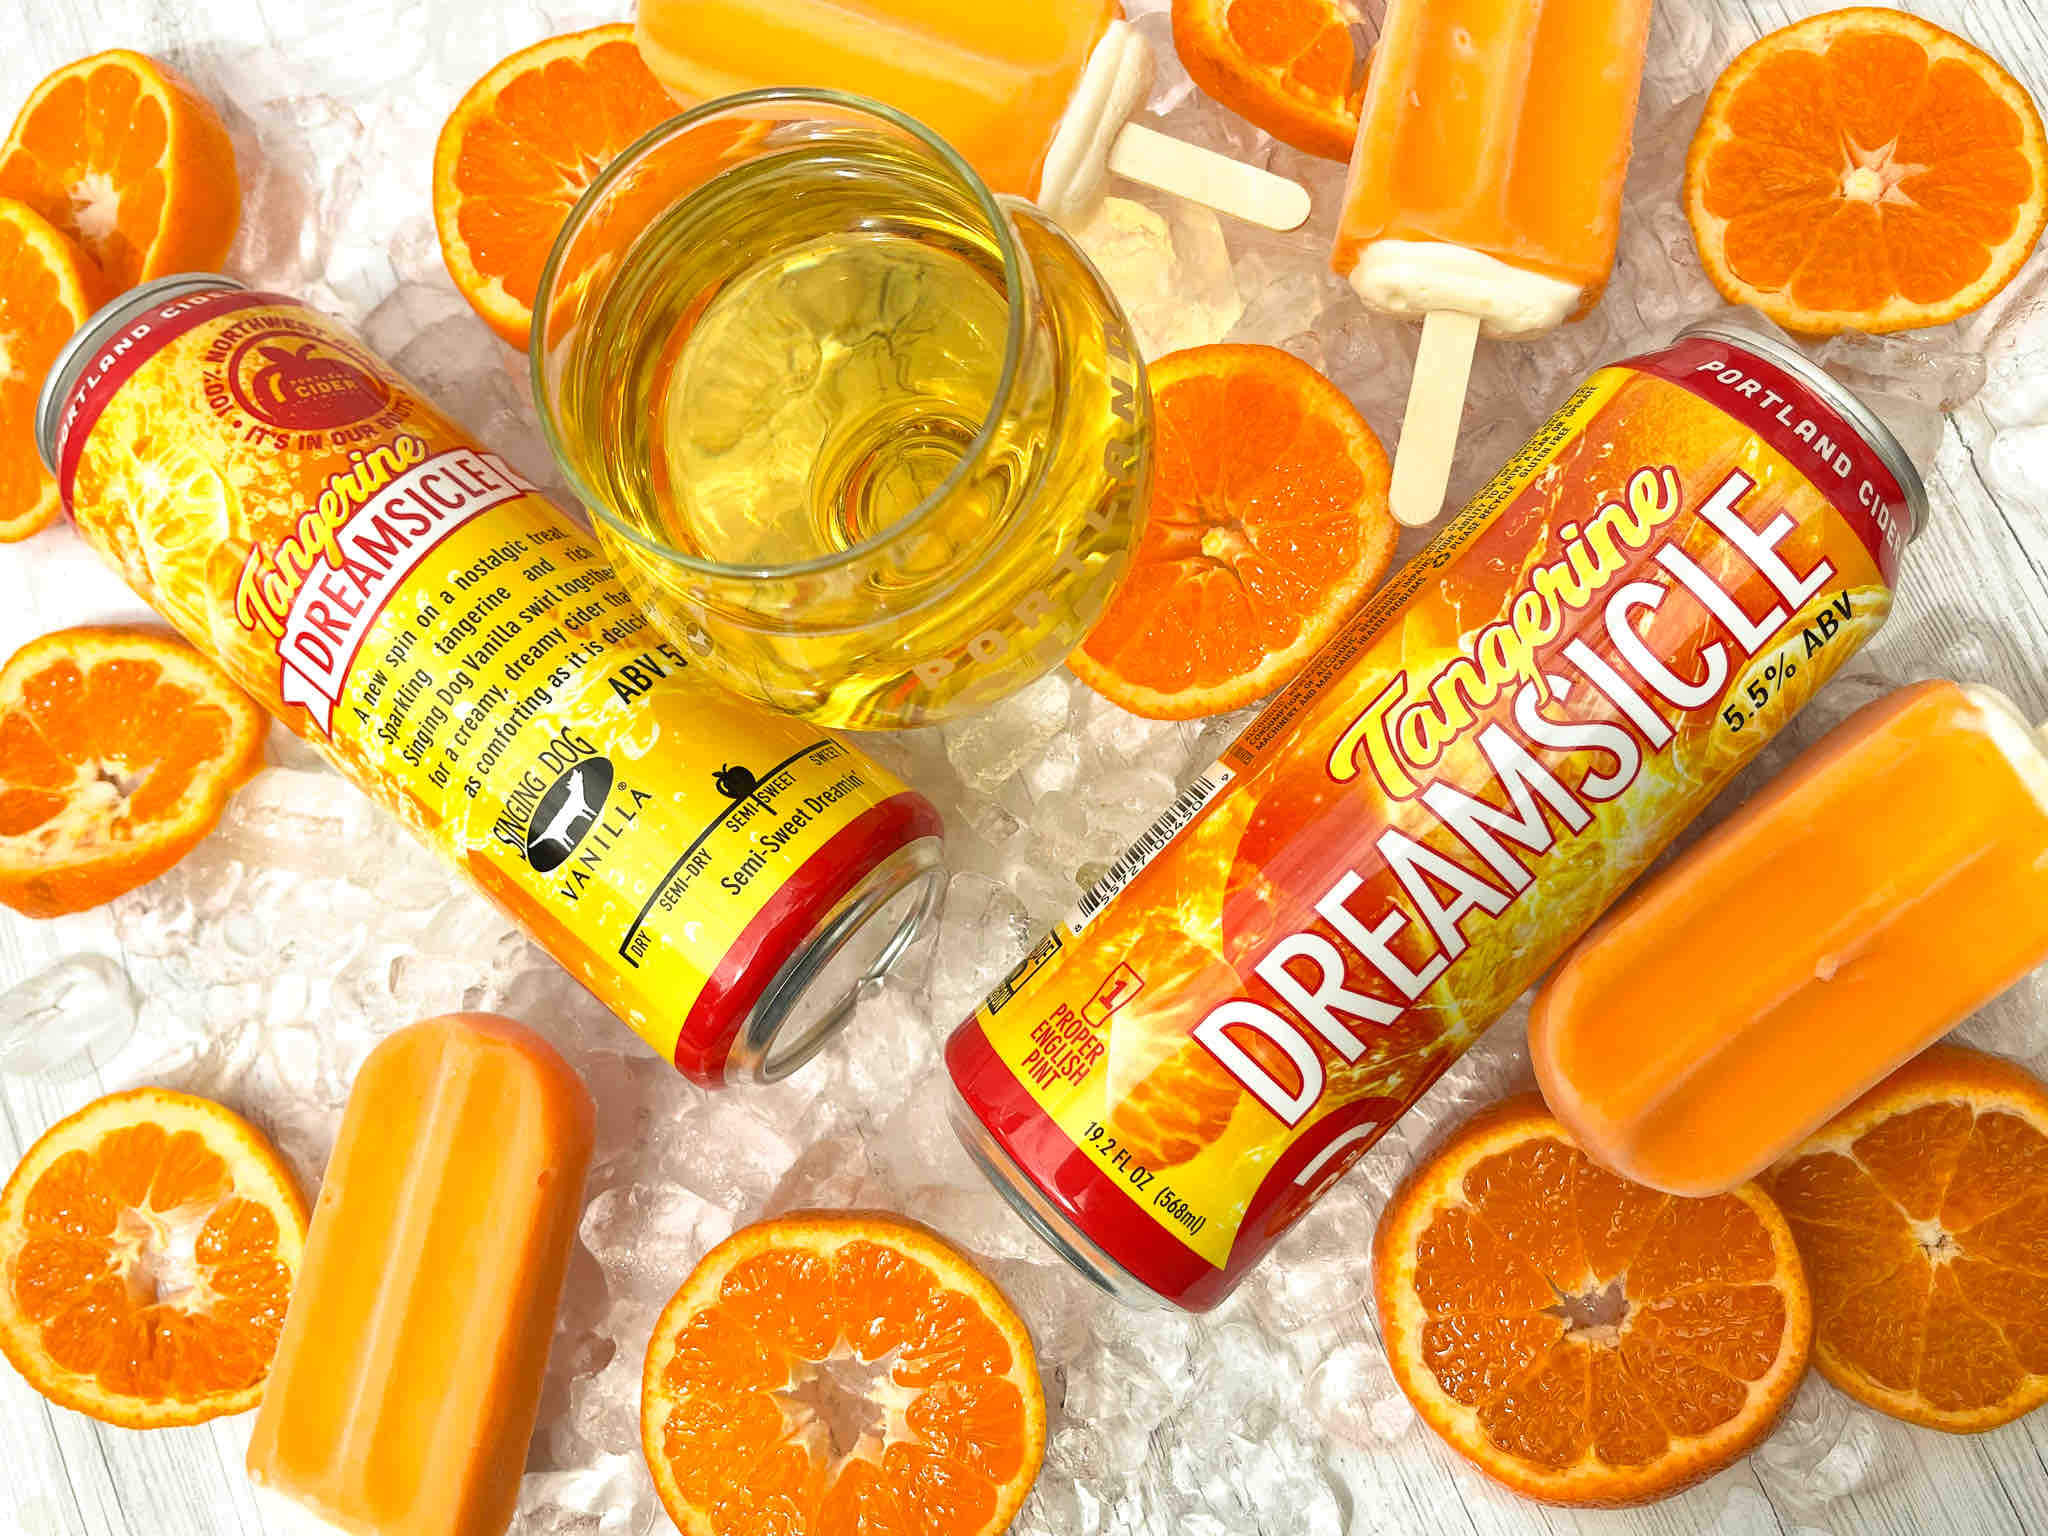 image of Tangerine Dreamsicle courtesy of Portland Cider Co.